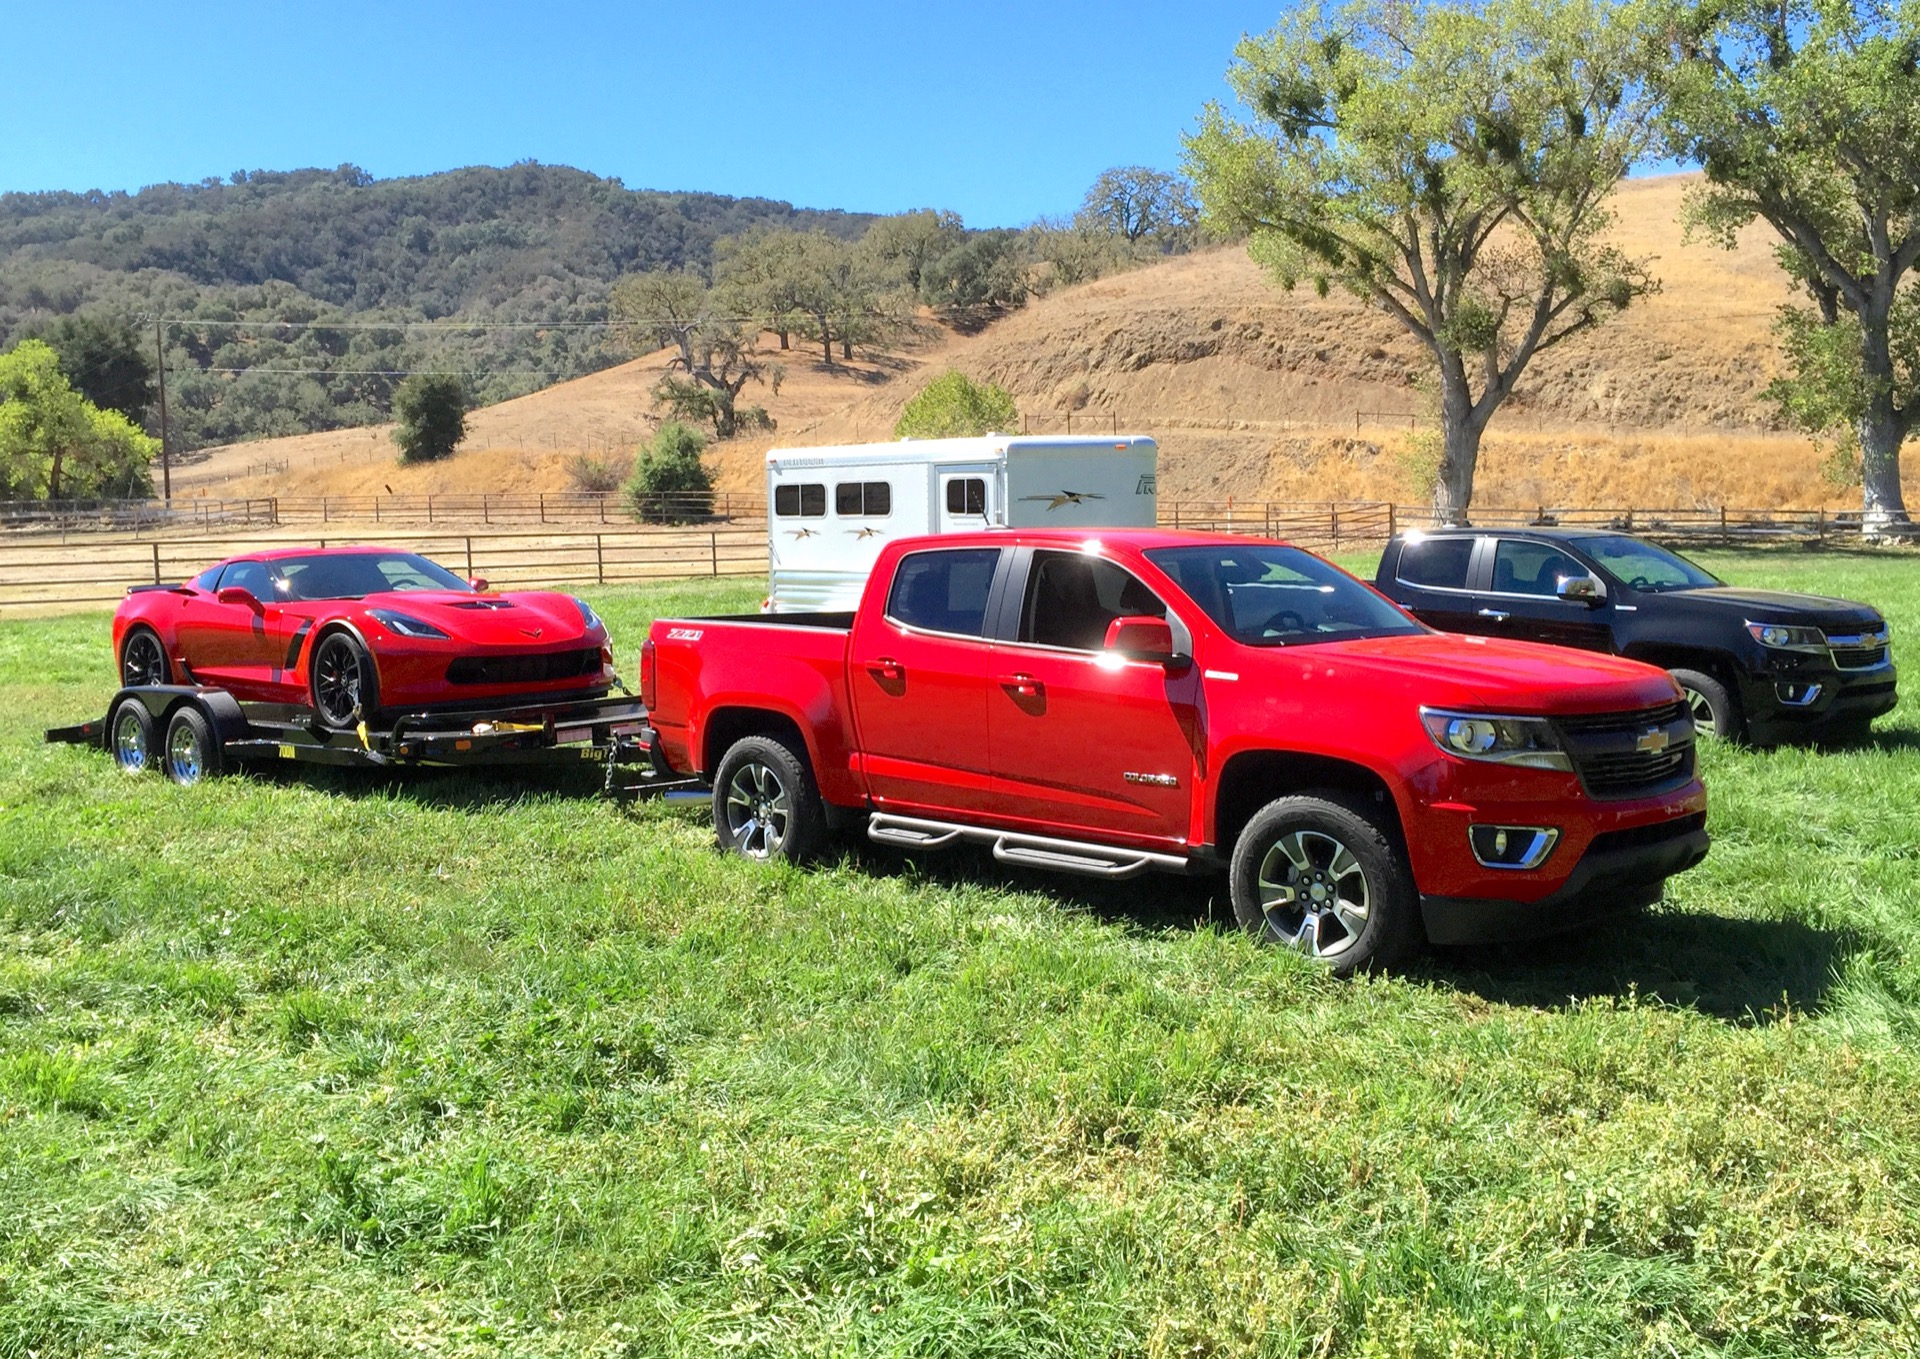 Diesel Trucks For Sale Colorado >> 2016 Chevy Colorado: V-6 Or Duramax Diesel?